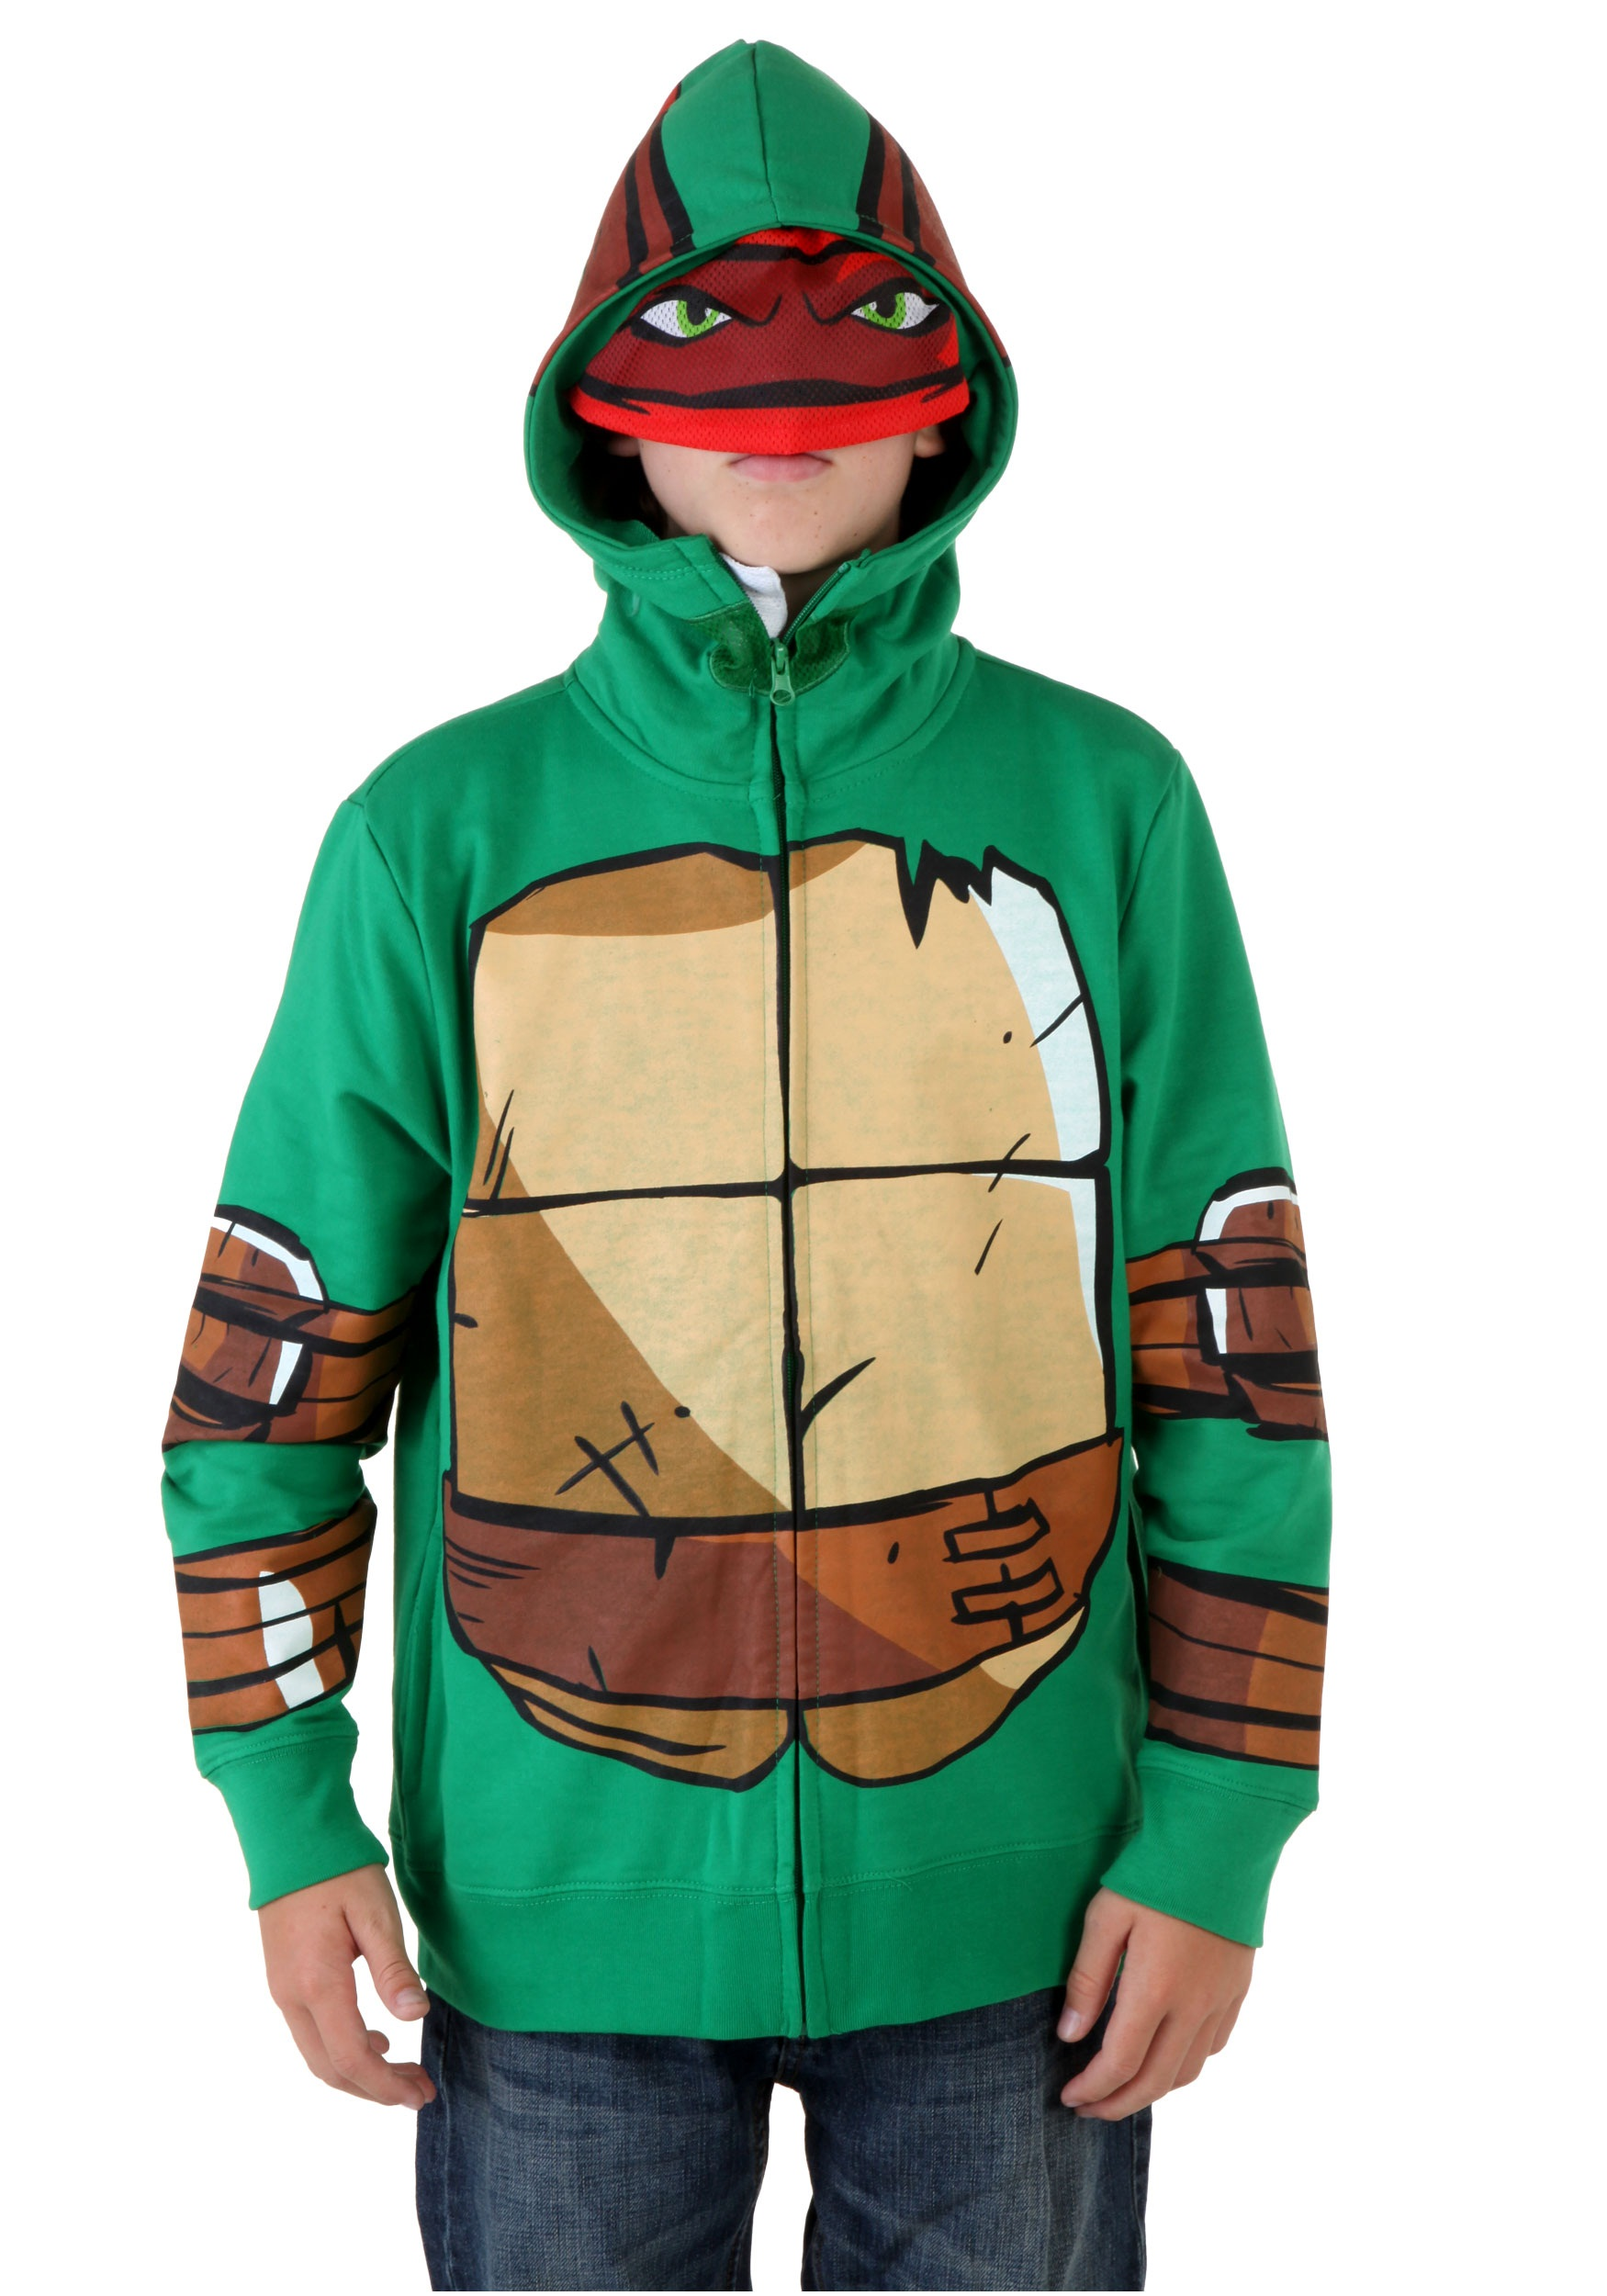 Youth TMNT Costume Hoodie  sc 1 st  Halloween Costumes : kids donatello costume  - Germanpascual.Com